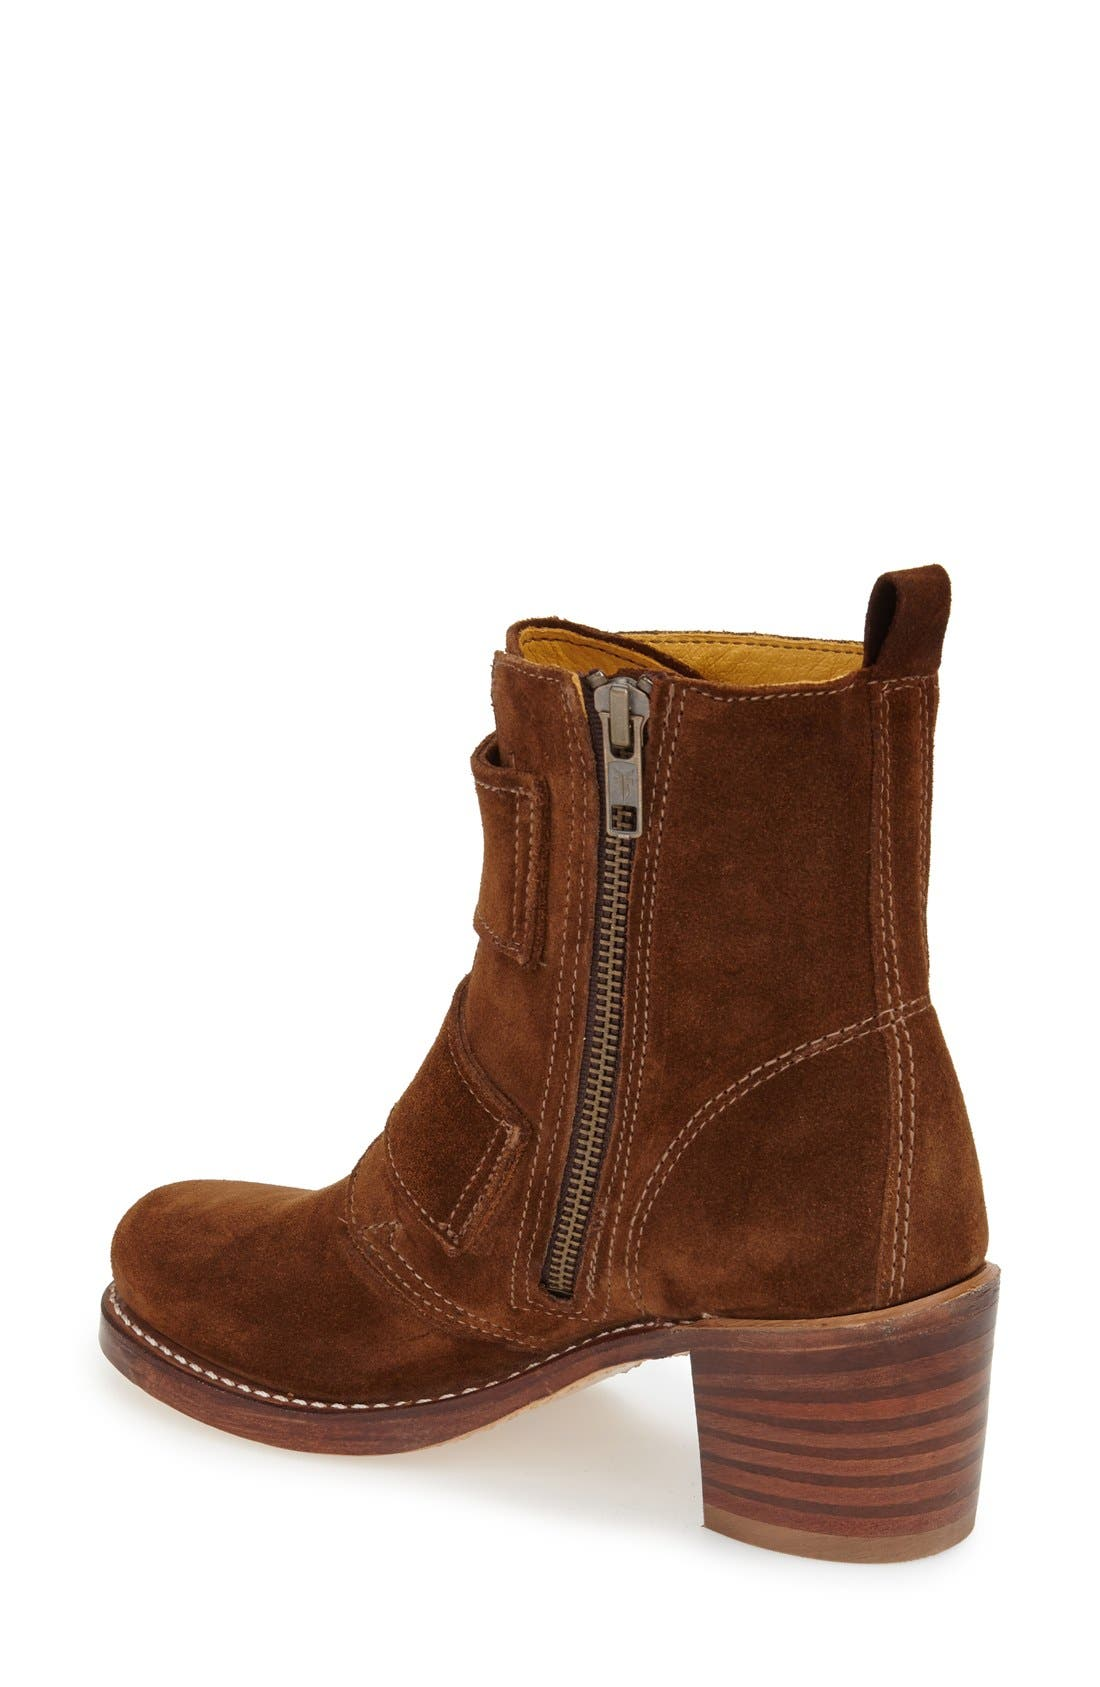 'Sabrina' Double Buckle Boot,                             Alternate thumbnail 7, color,